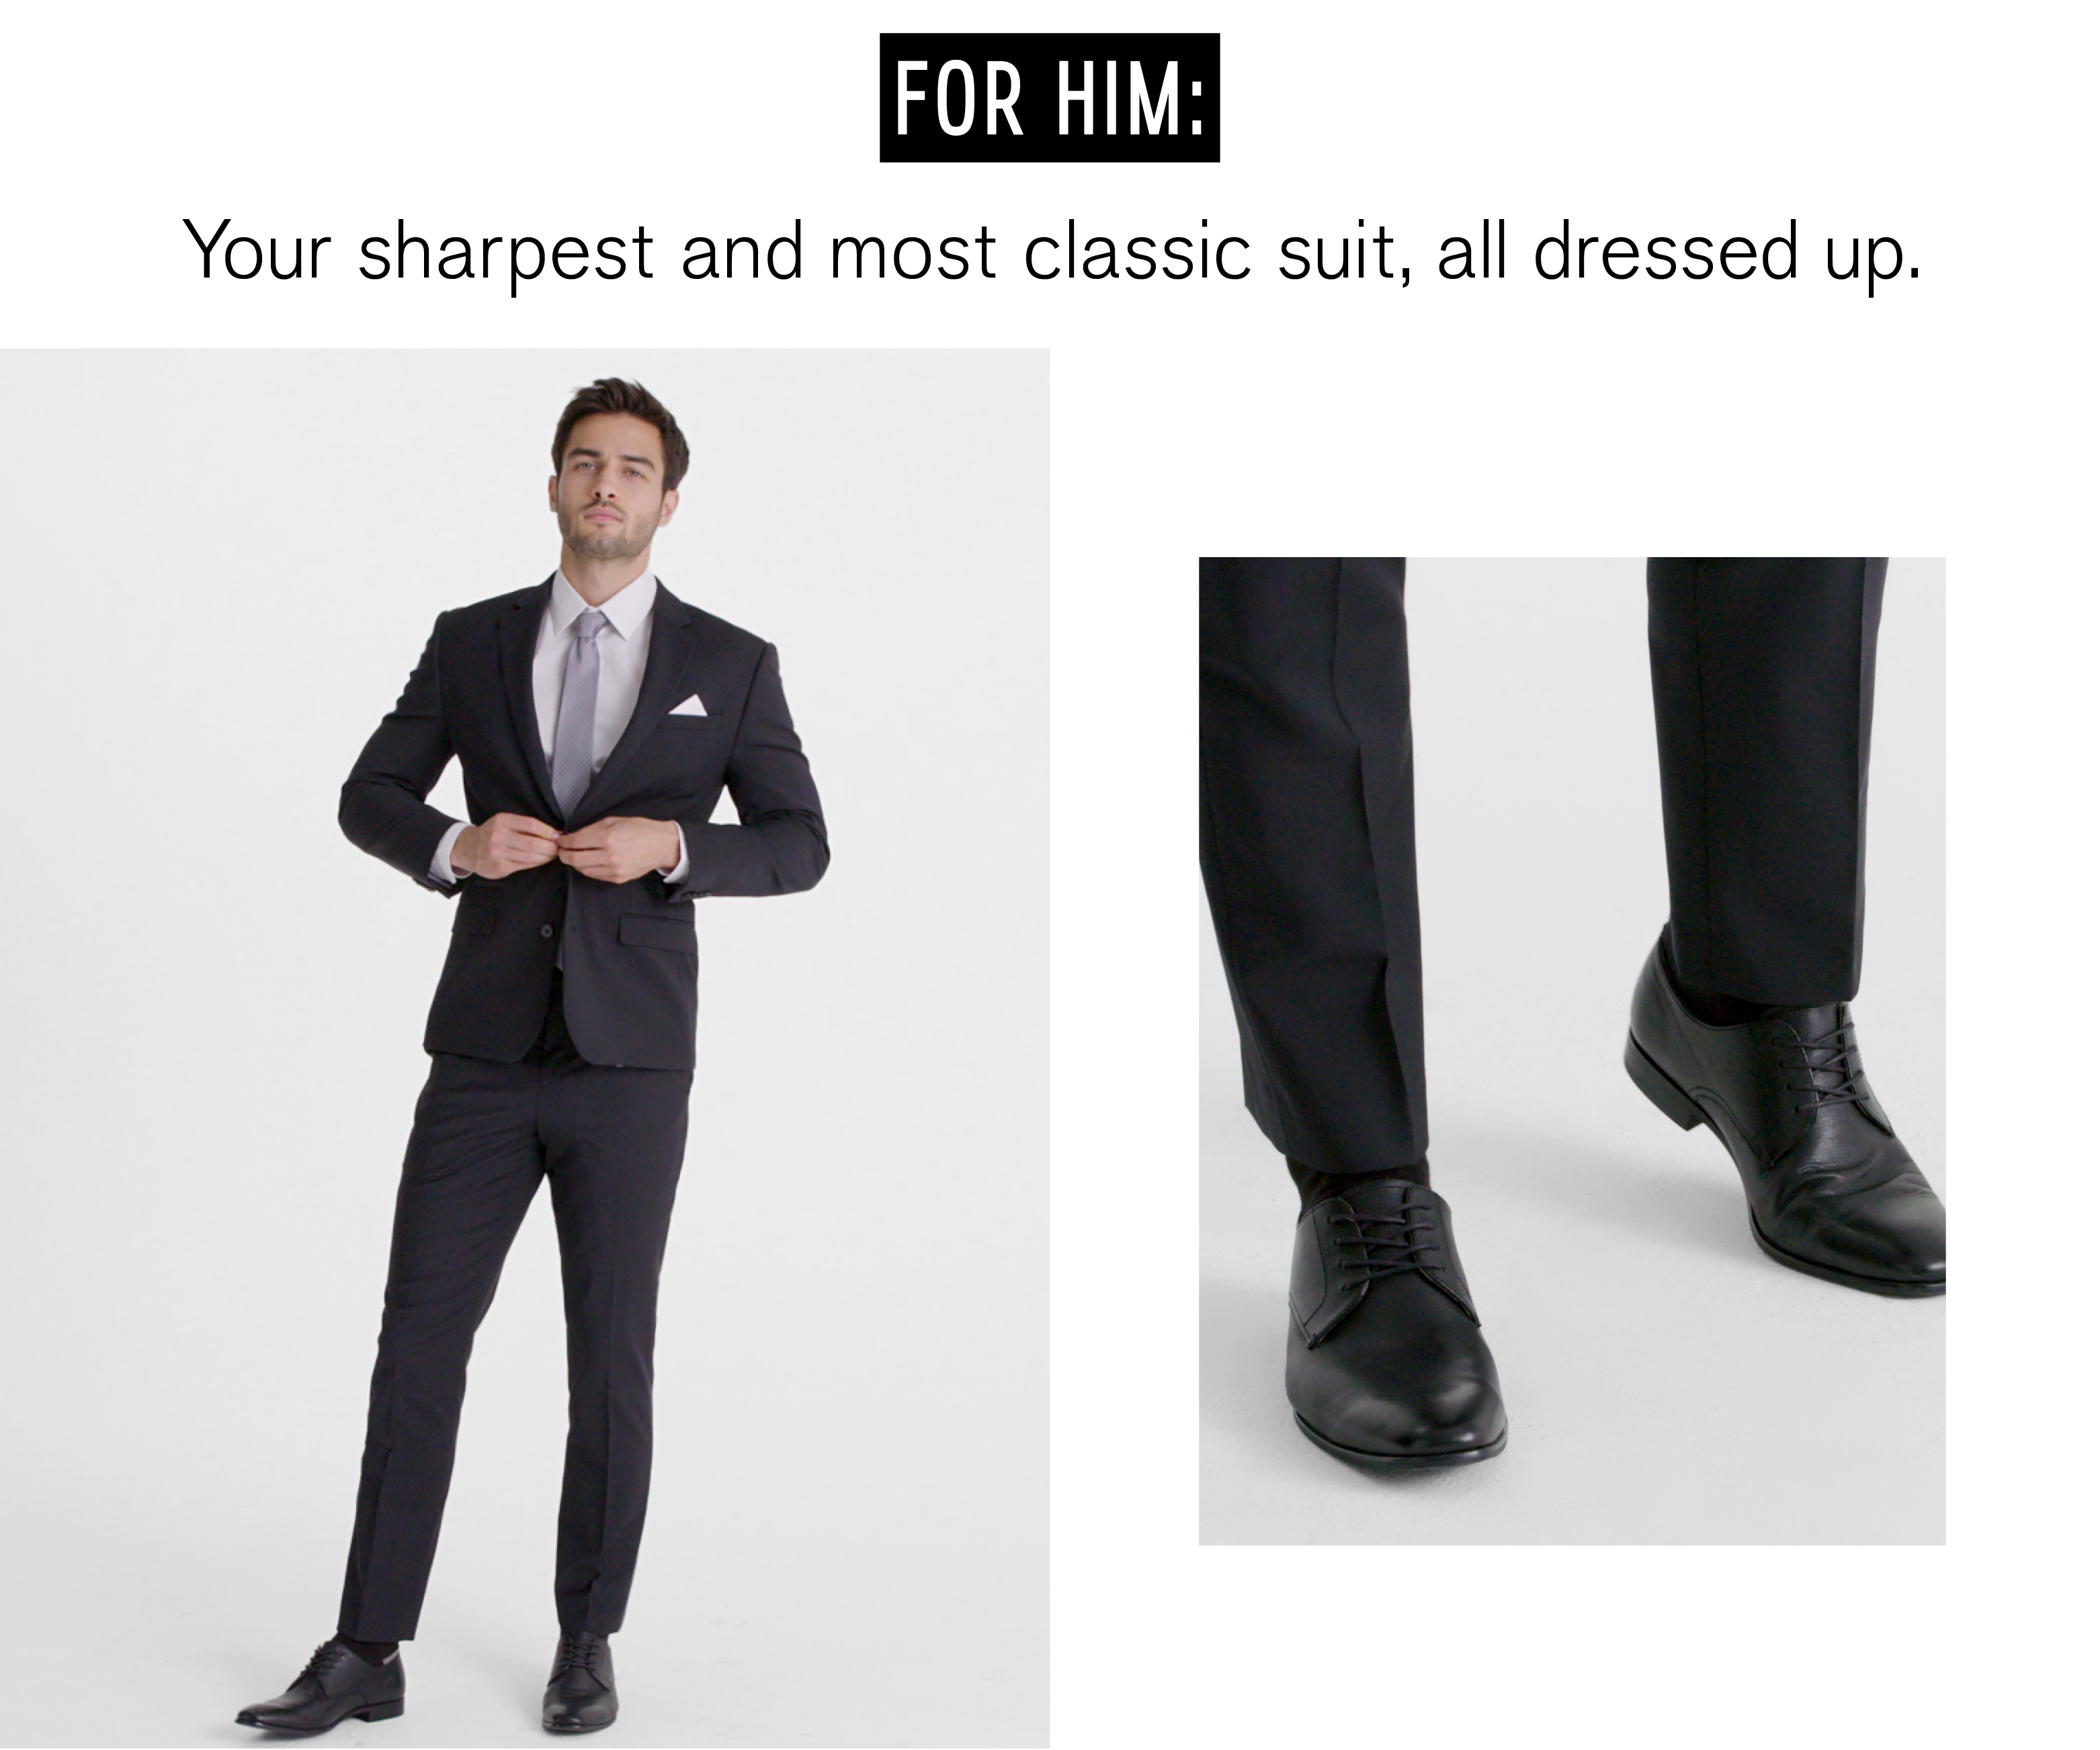 your-sharpest-and-most-classic-suit-all-dressed-up